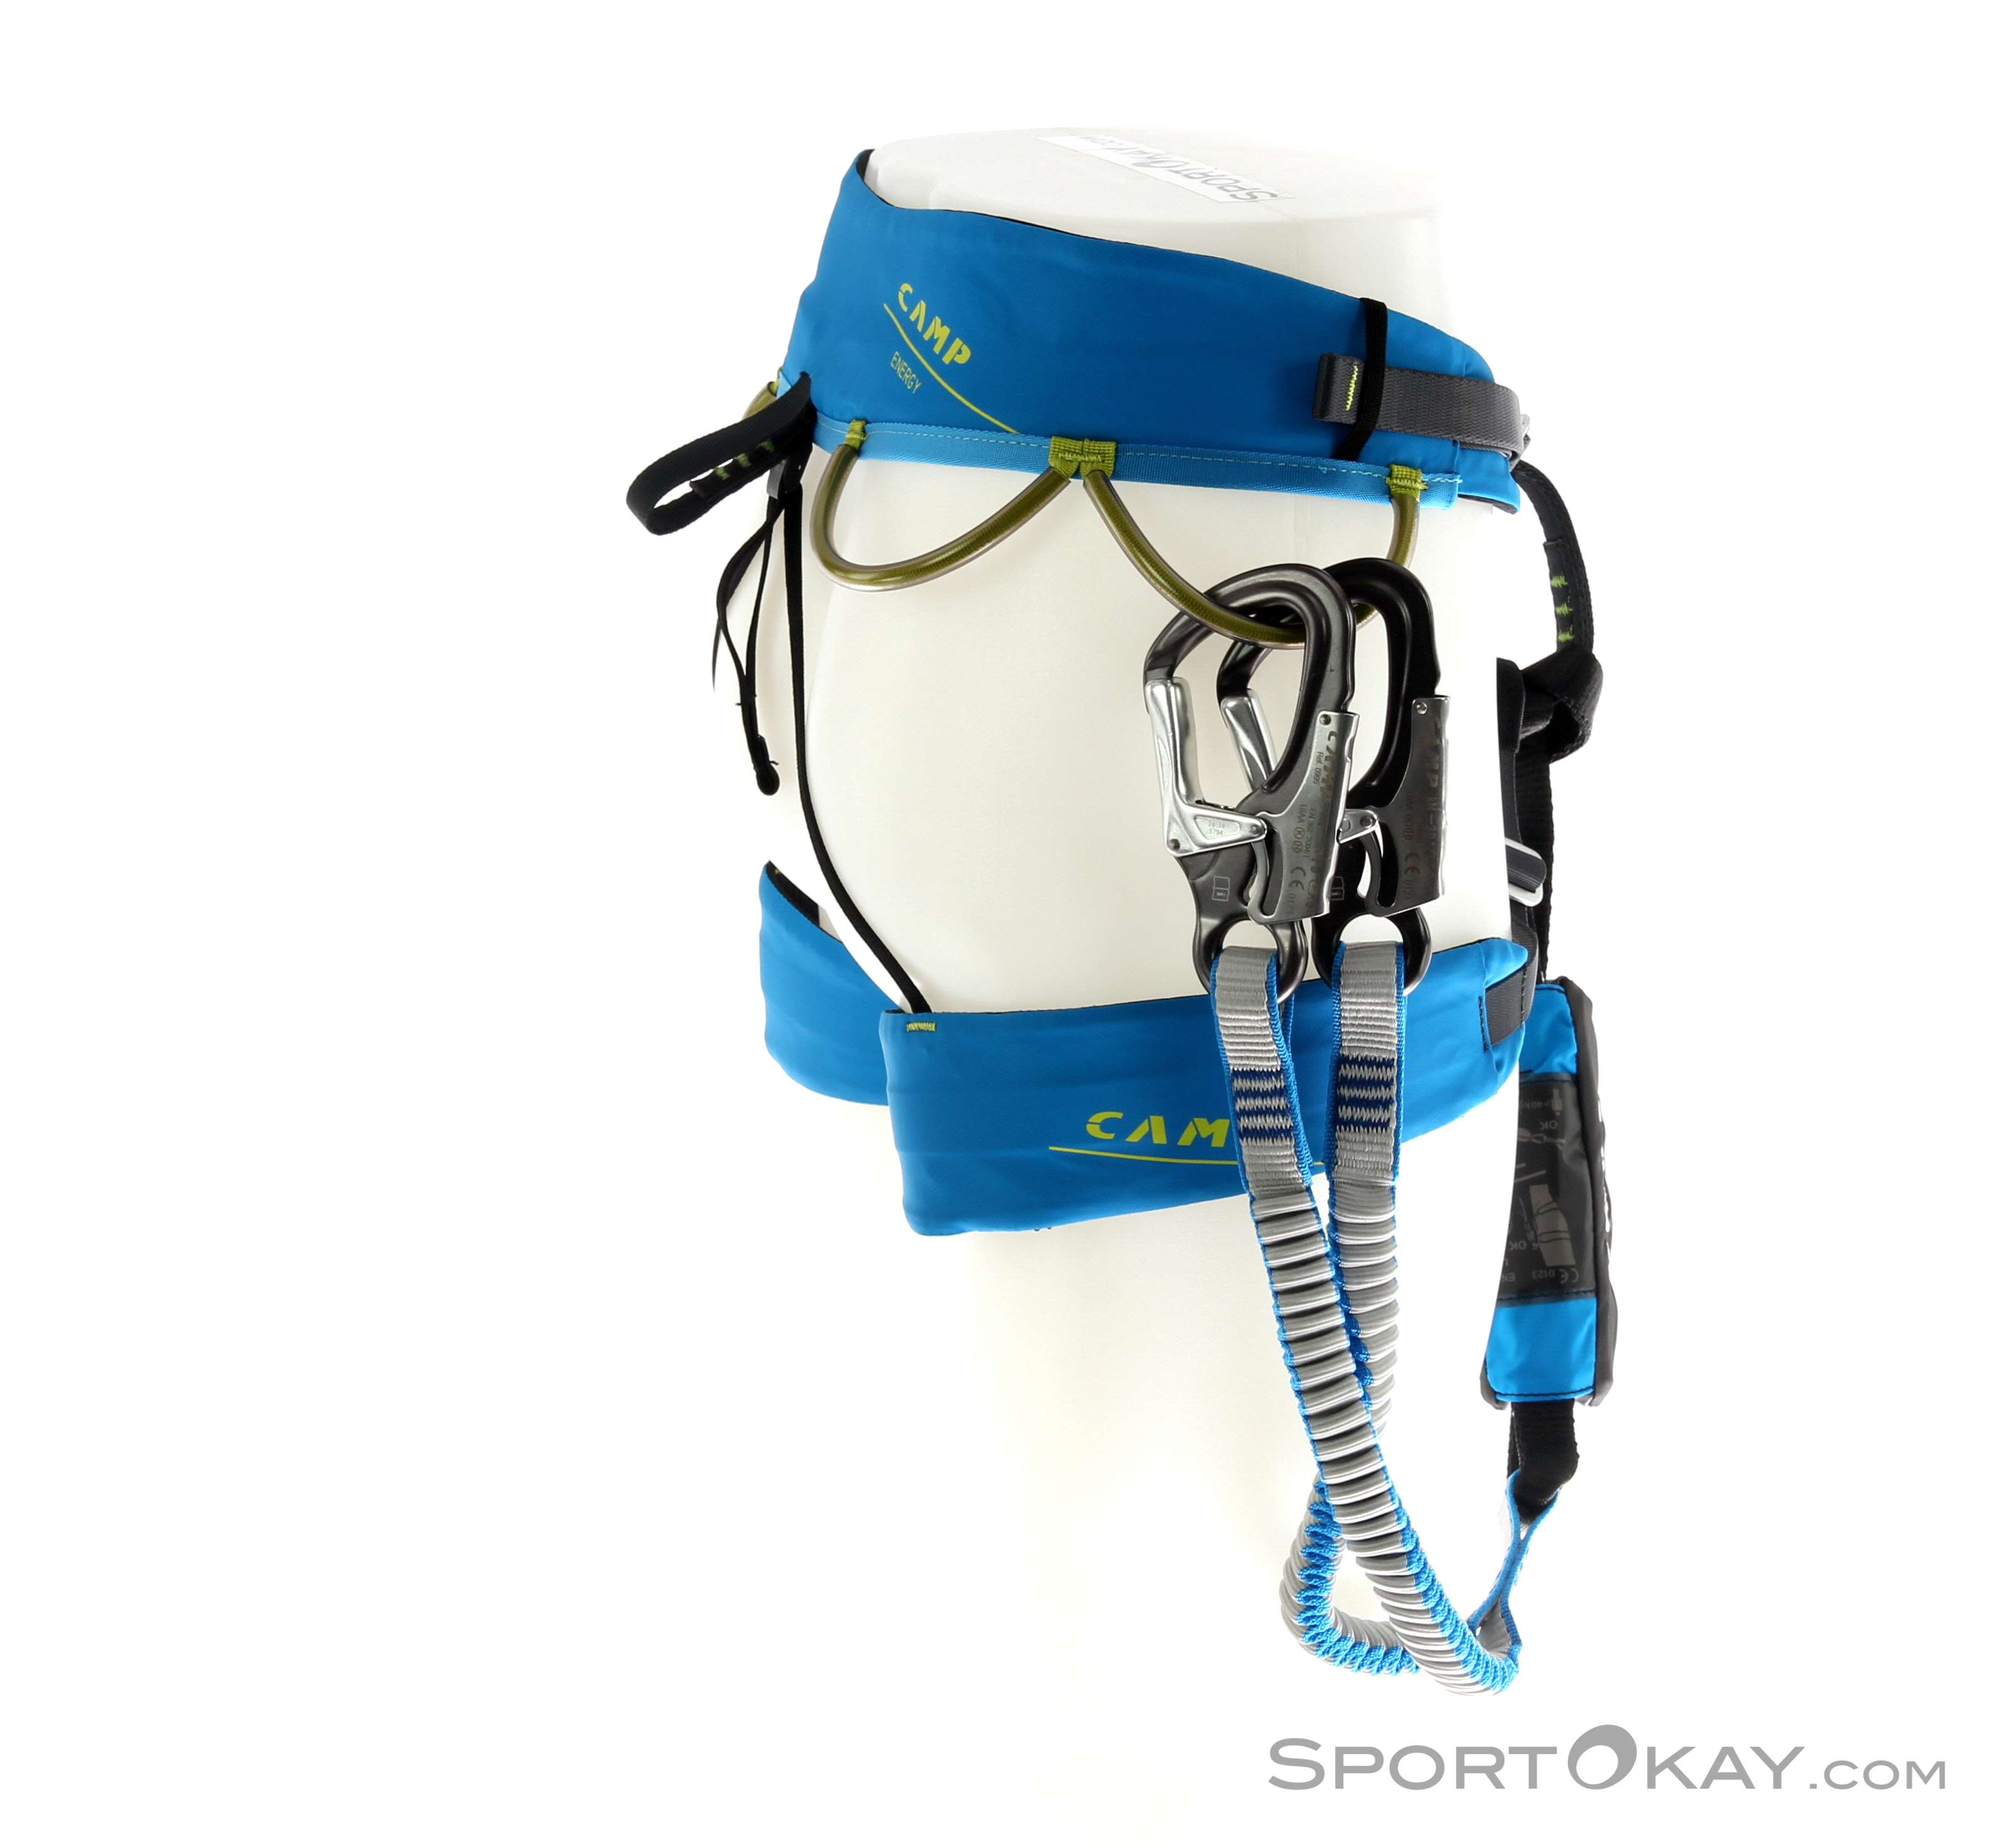 CAMP Kit Ferrata Kinetic Rewind Energy kit via ferrata